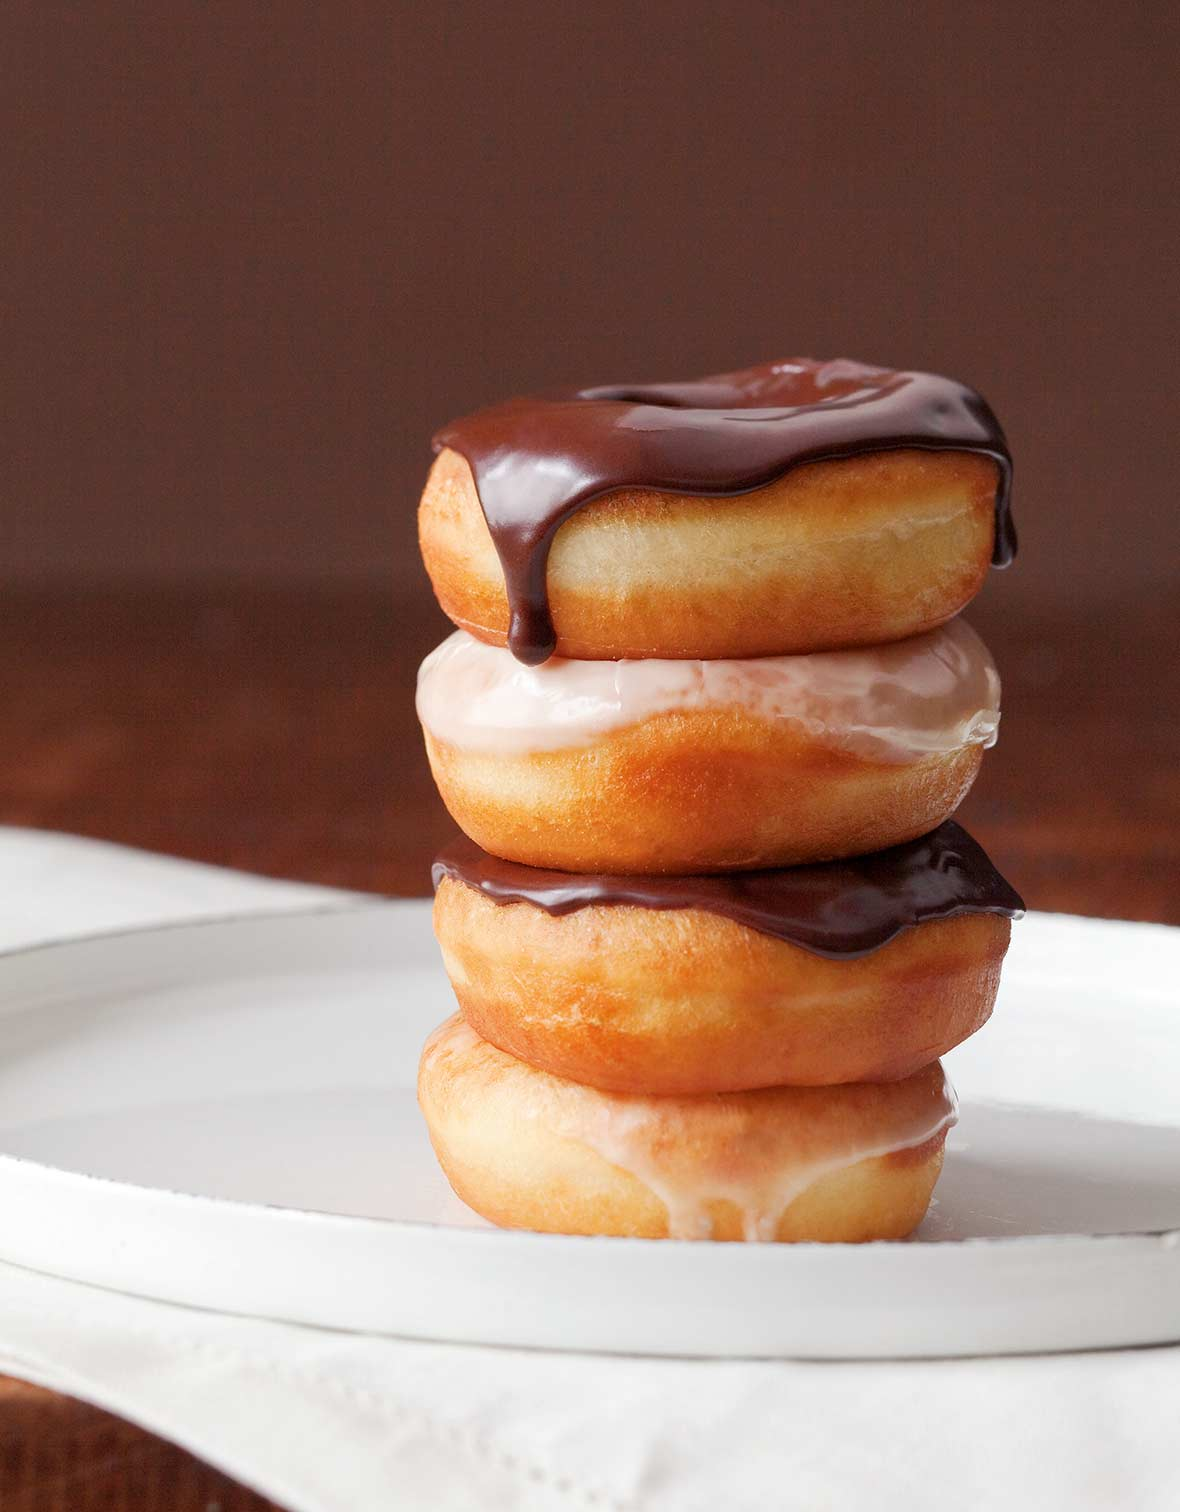 Four glazed doughnuts stacked on top of each other, two with chocolate glaze, 2 with vanilla glaze